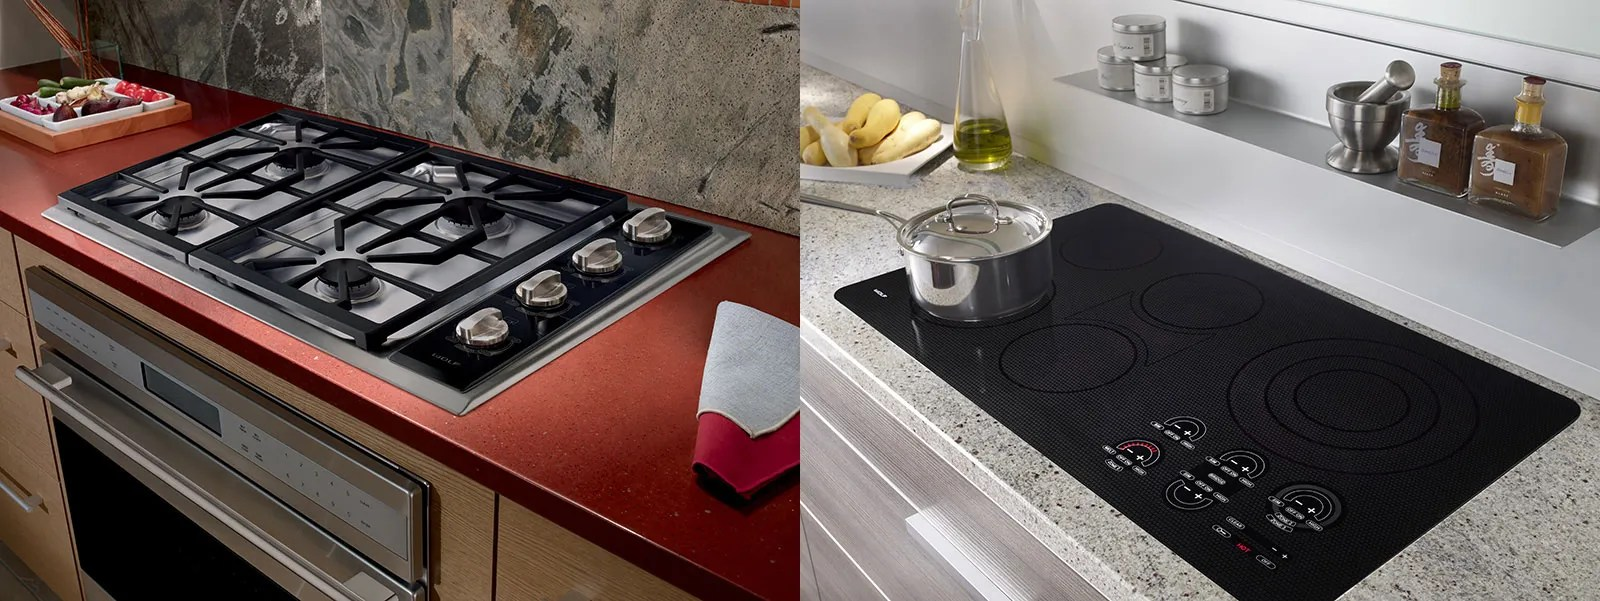 kitchen stove tops faucets best cooktop showdown gas vs electric atherton appliance wolf range and